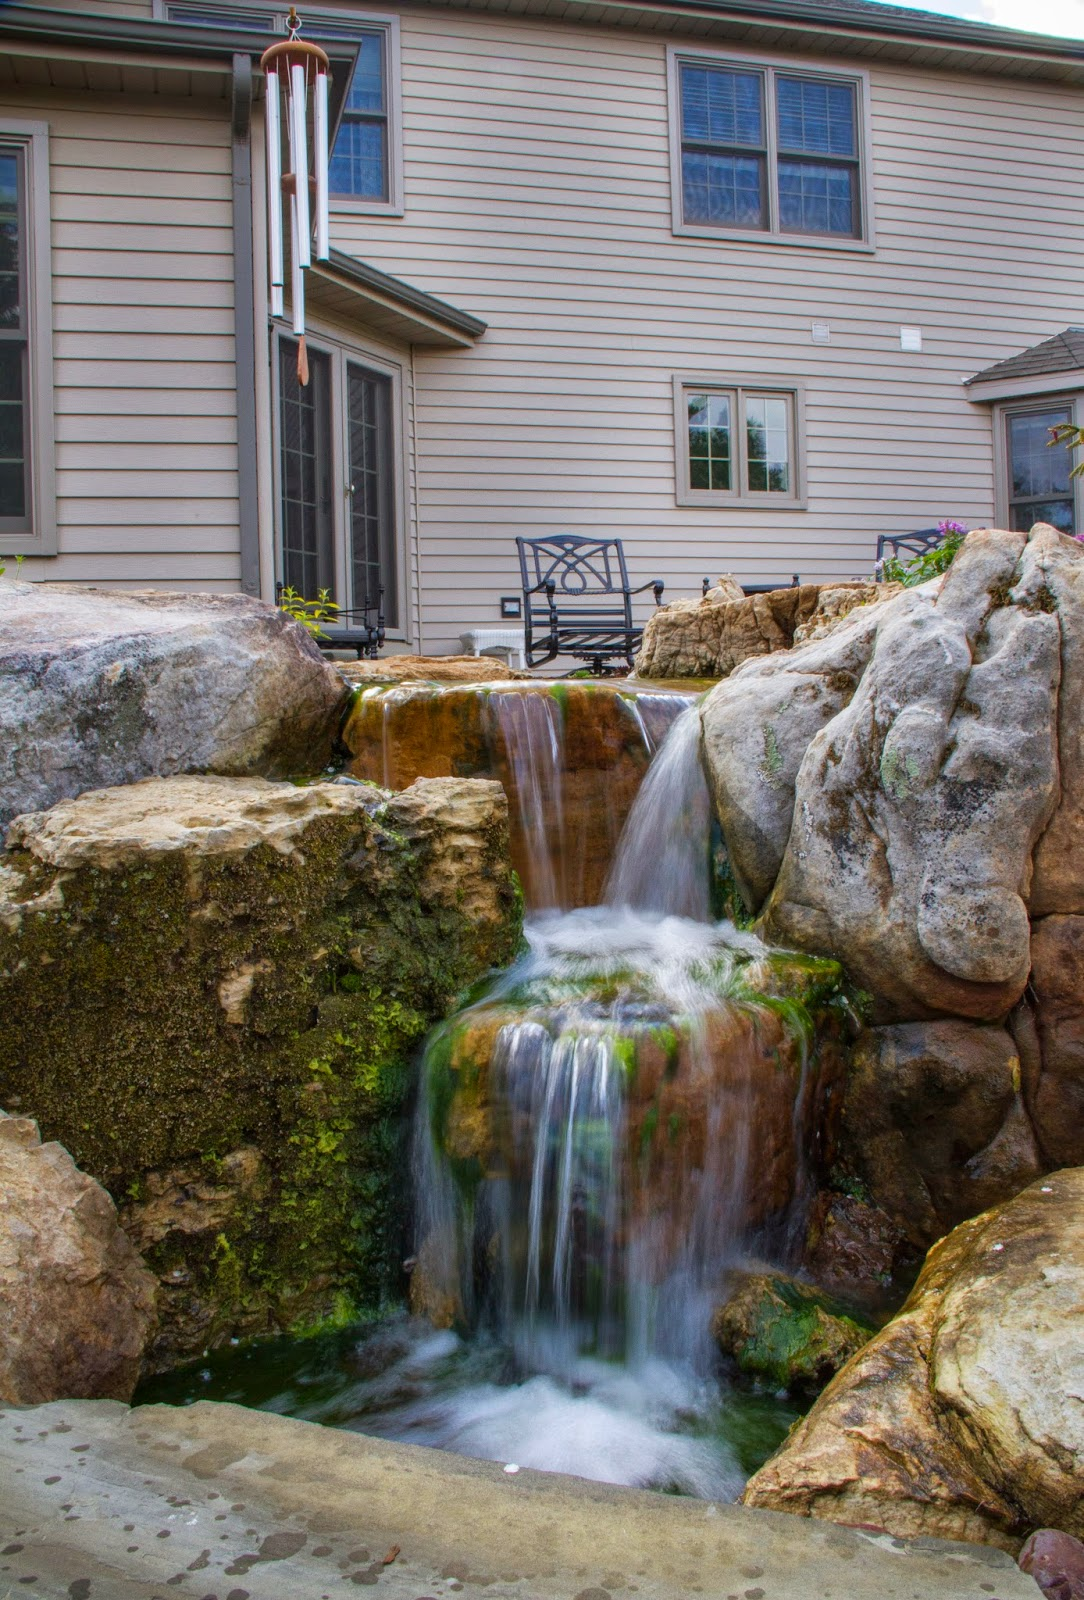 A mossy waterfall not only provides beauty but adds soothing sounds to this perfect backyard.